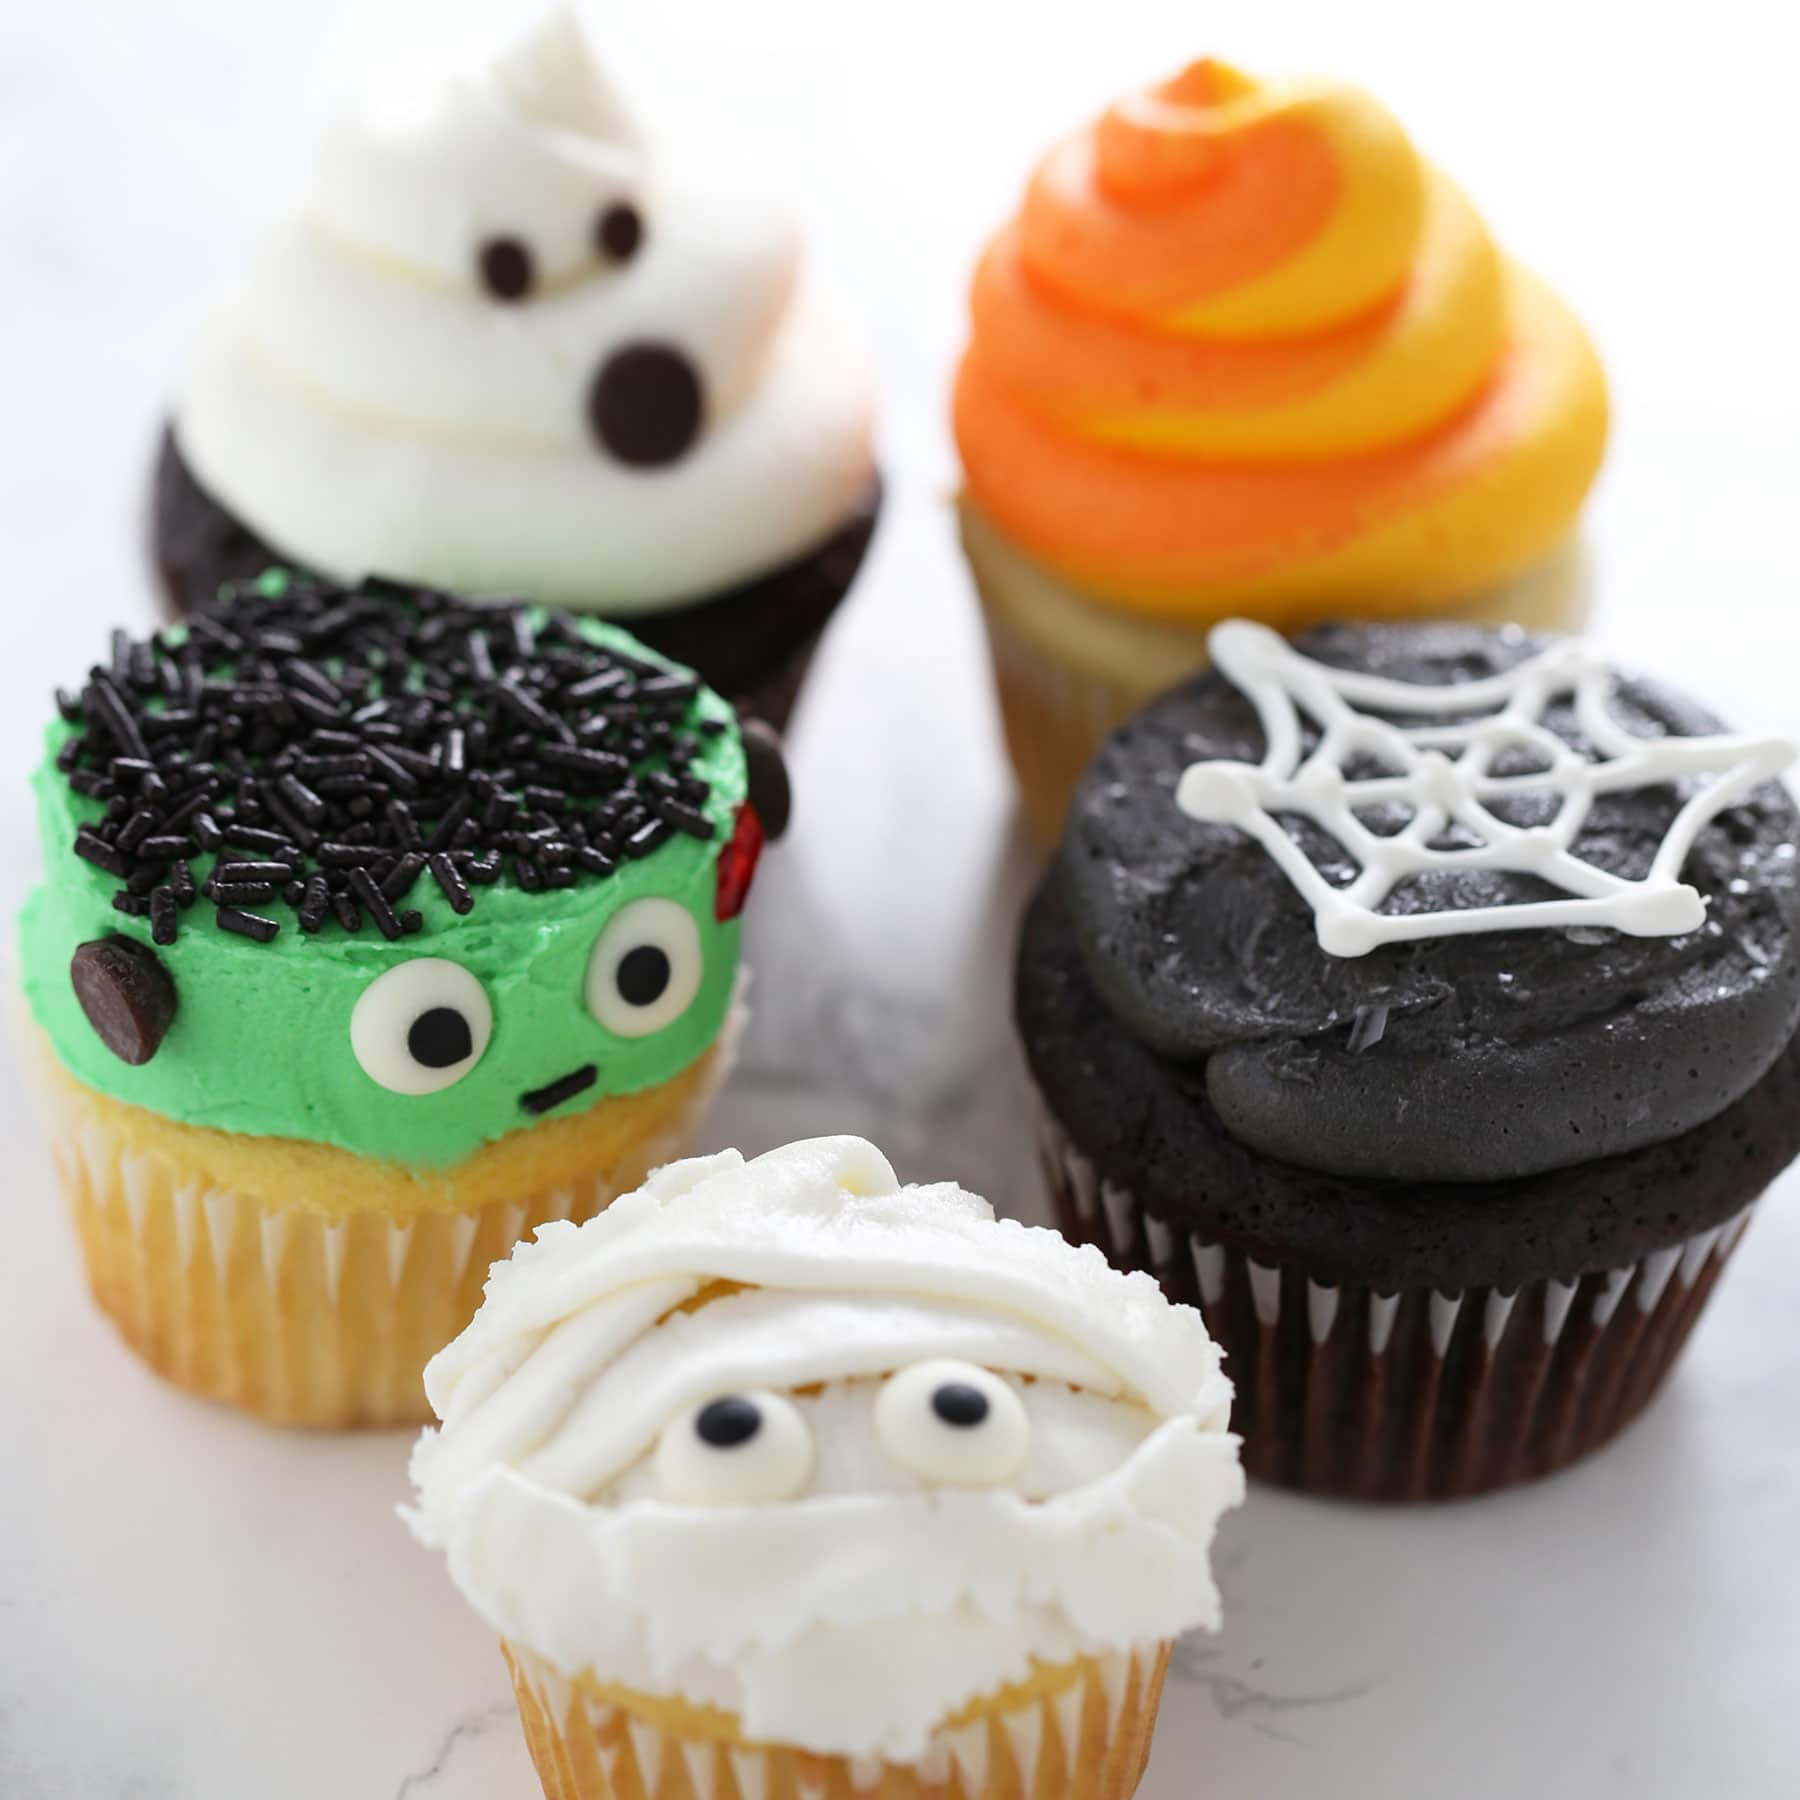 Ideas For Decorating Cupcakes: How To Make Halloween Cupcakes